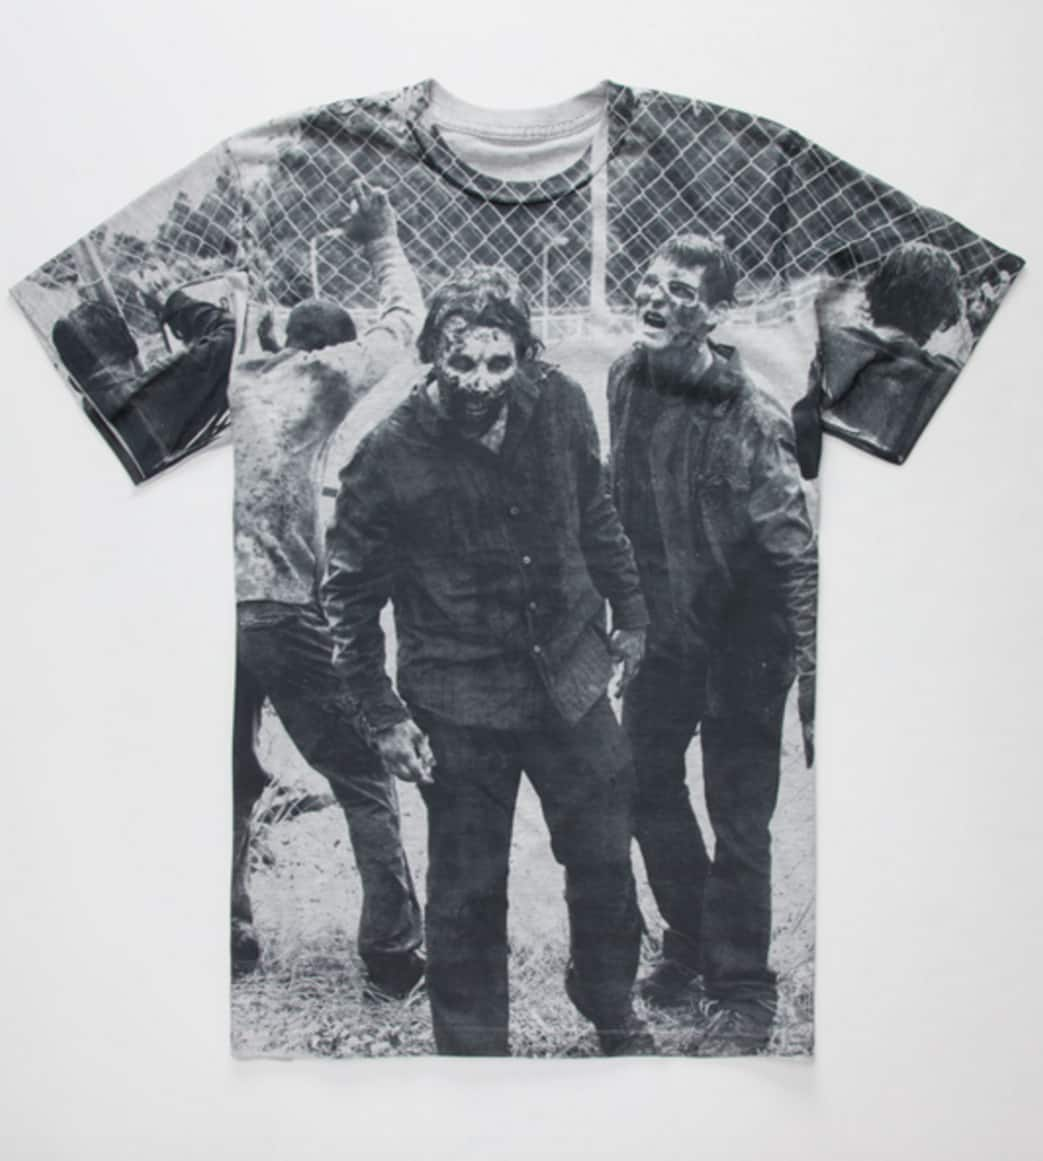 Rook X Mens The Walking Dead T-Shirts $7.99 Each + Free Shipping